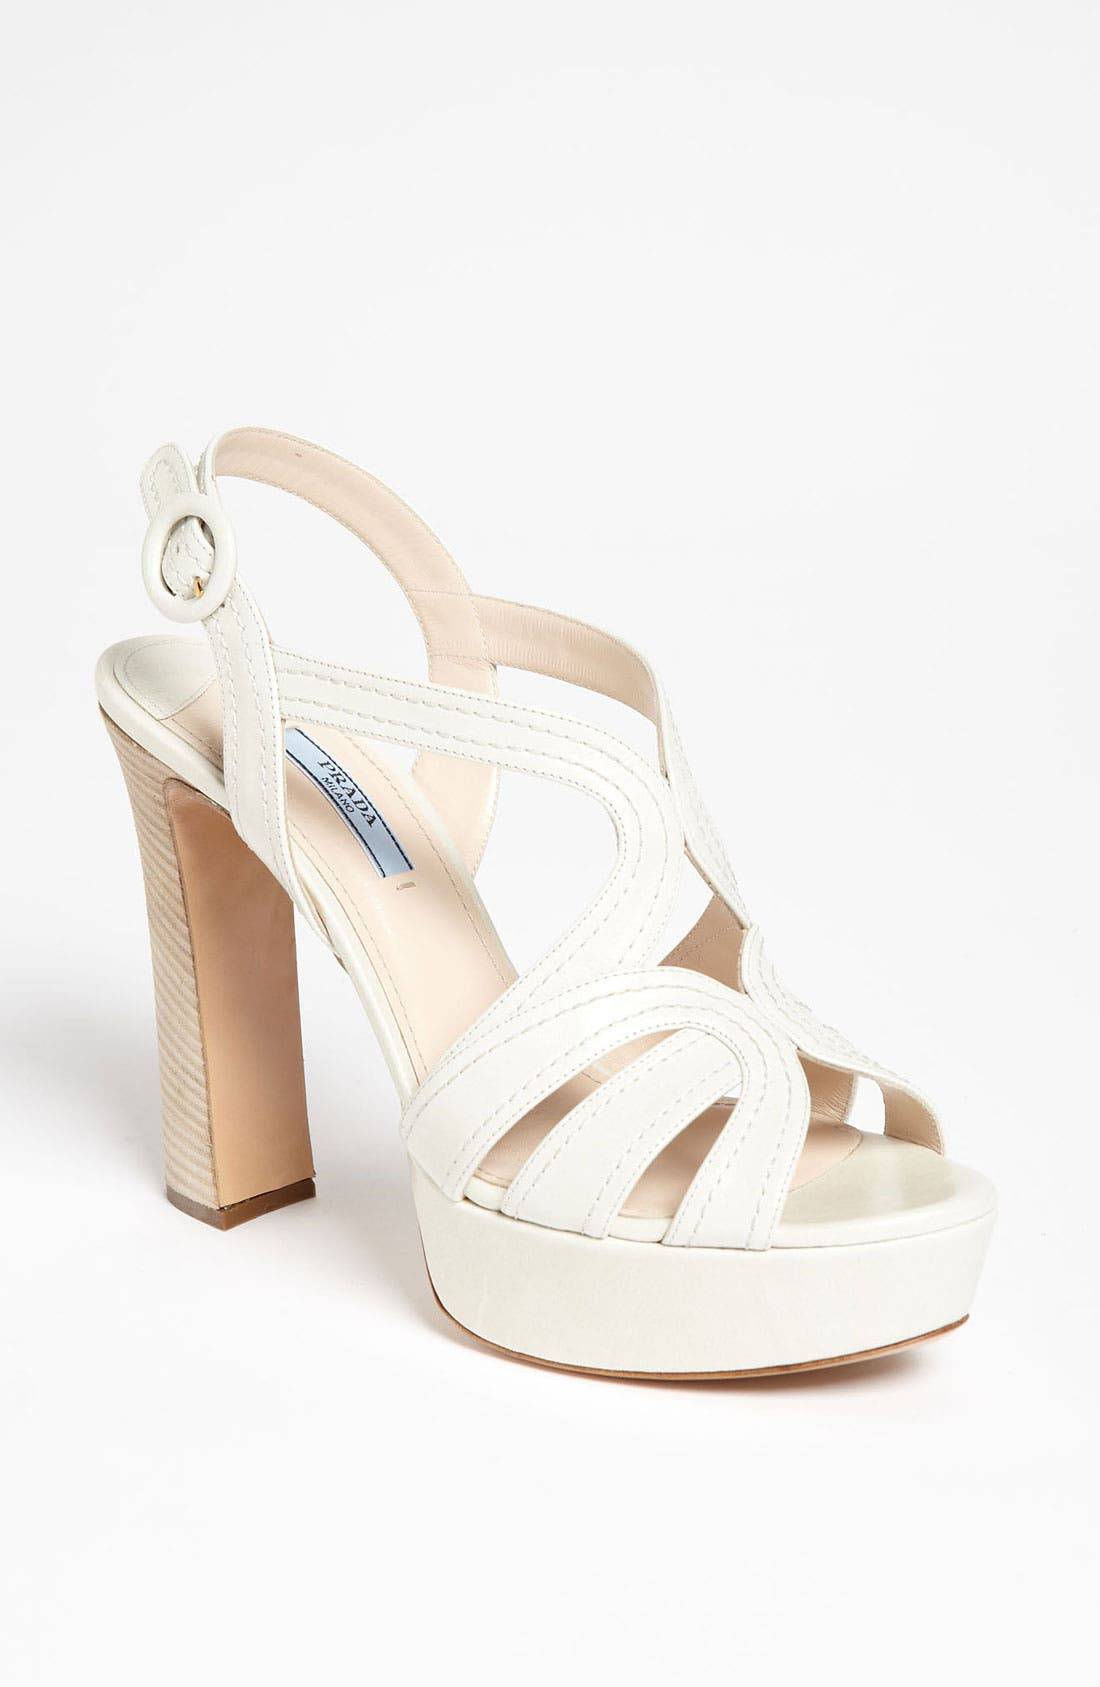 Alternate Image 1 Selected - Prada Blonde Heel Sandal